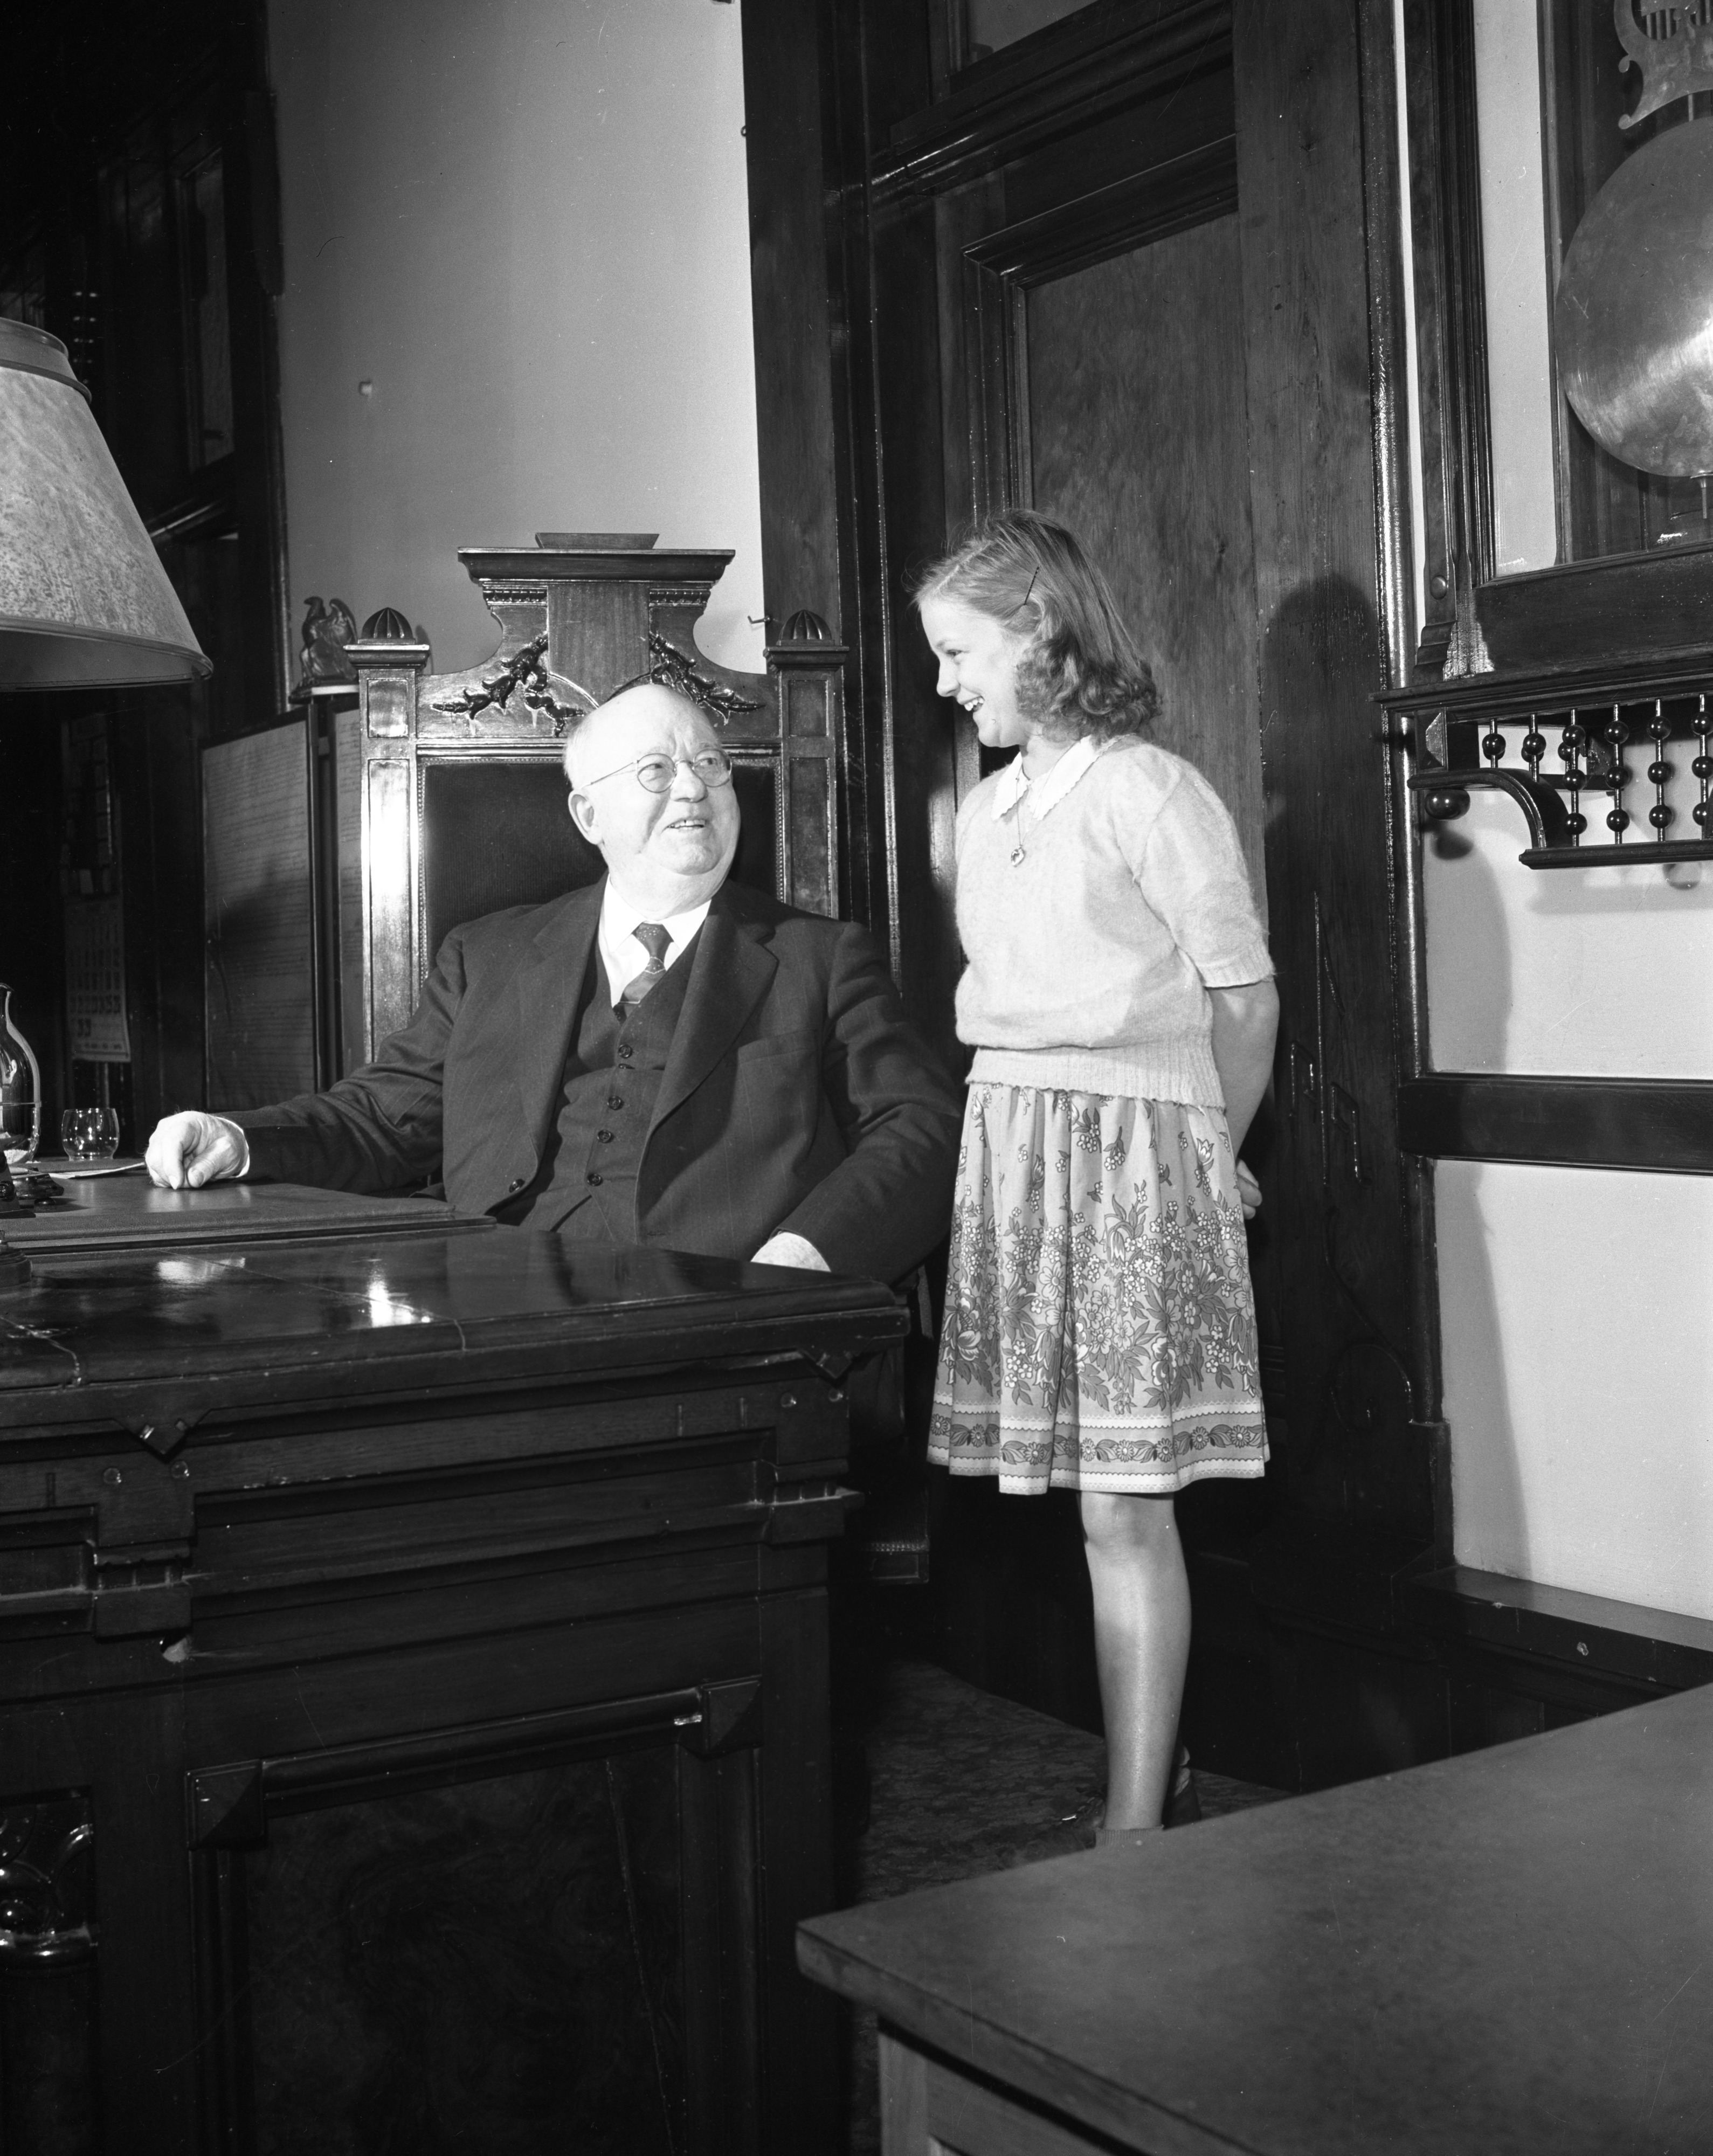 Judge George W. Sample Welcomes New U.S. Citizen Miss Johnstone, 1944 image